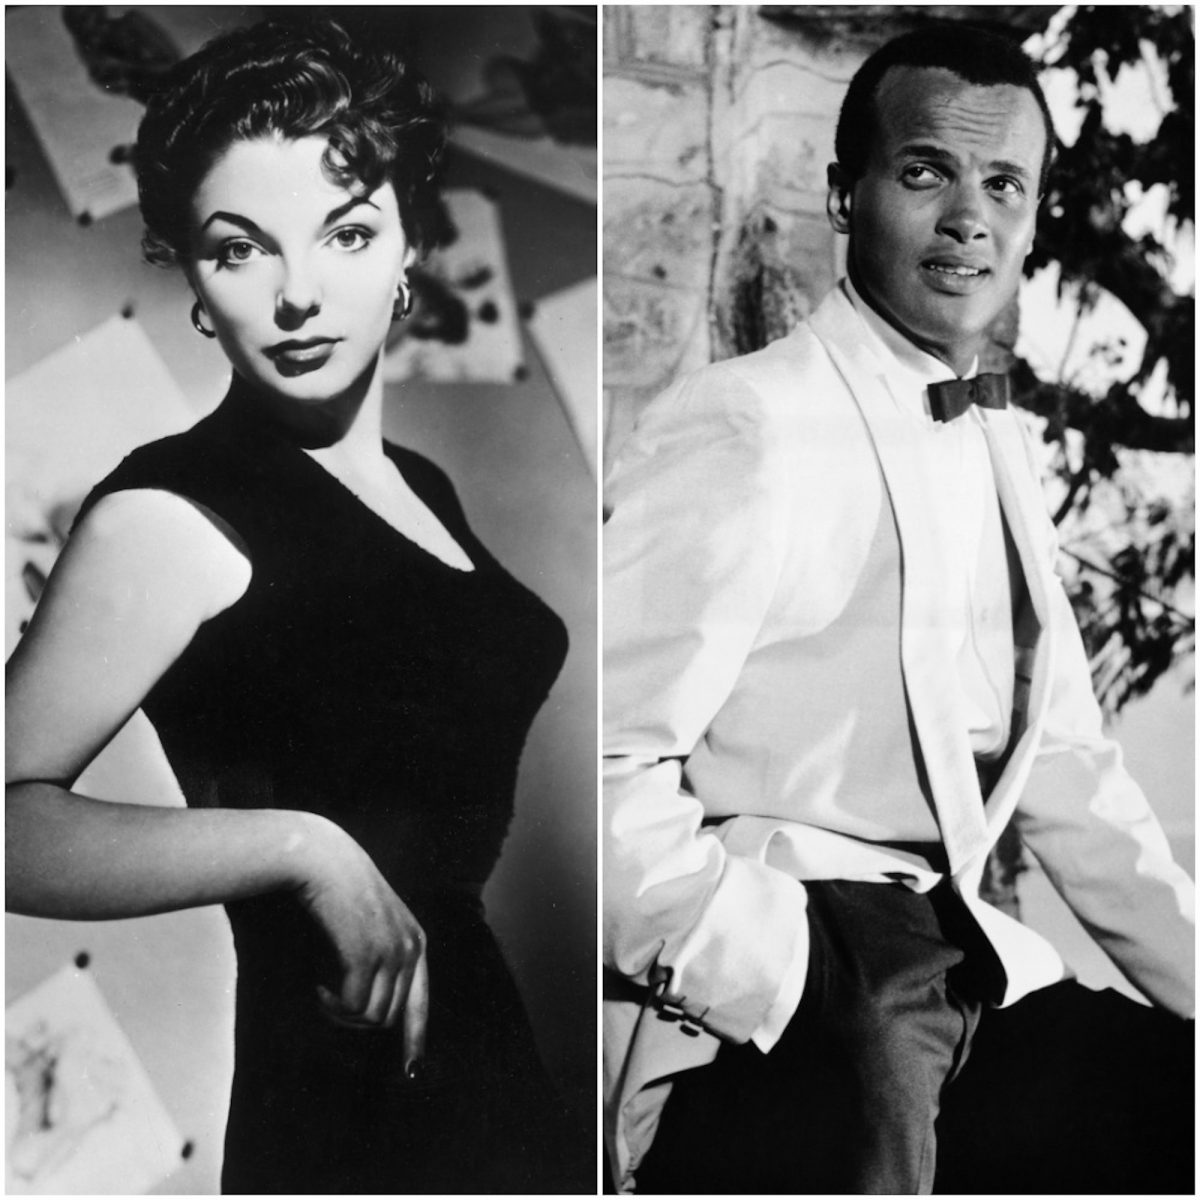 Joan Collins and Harry Belafonte